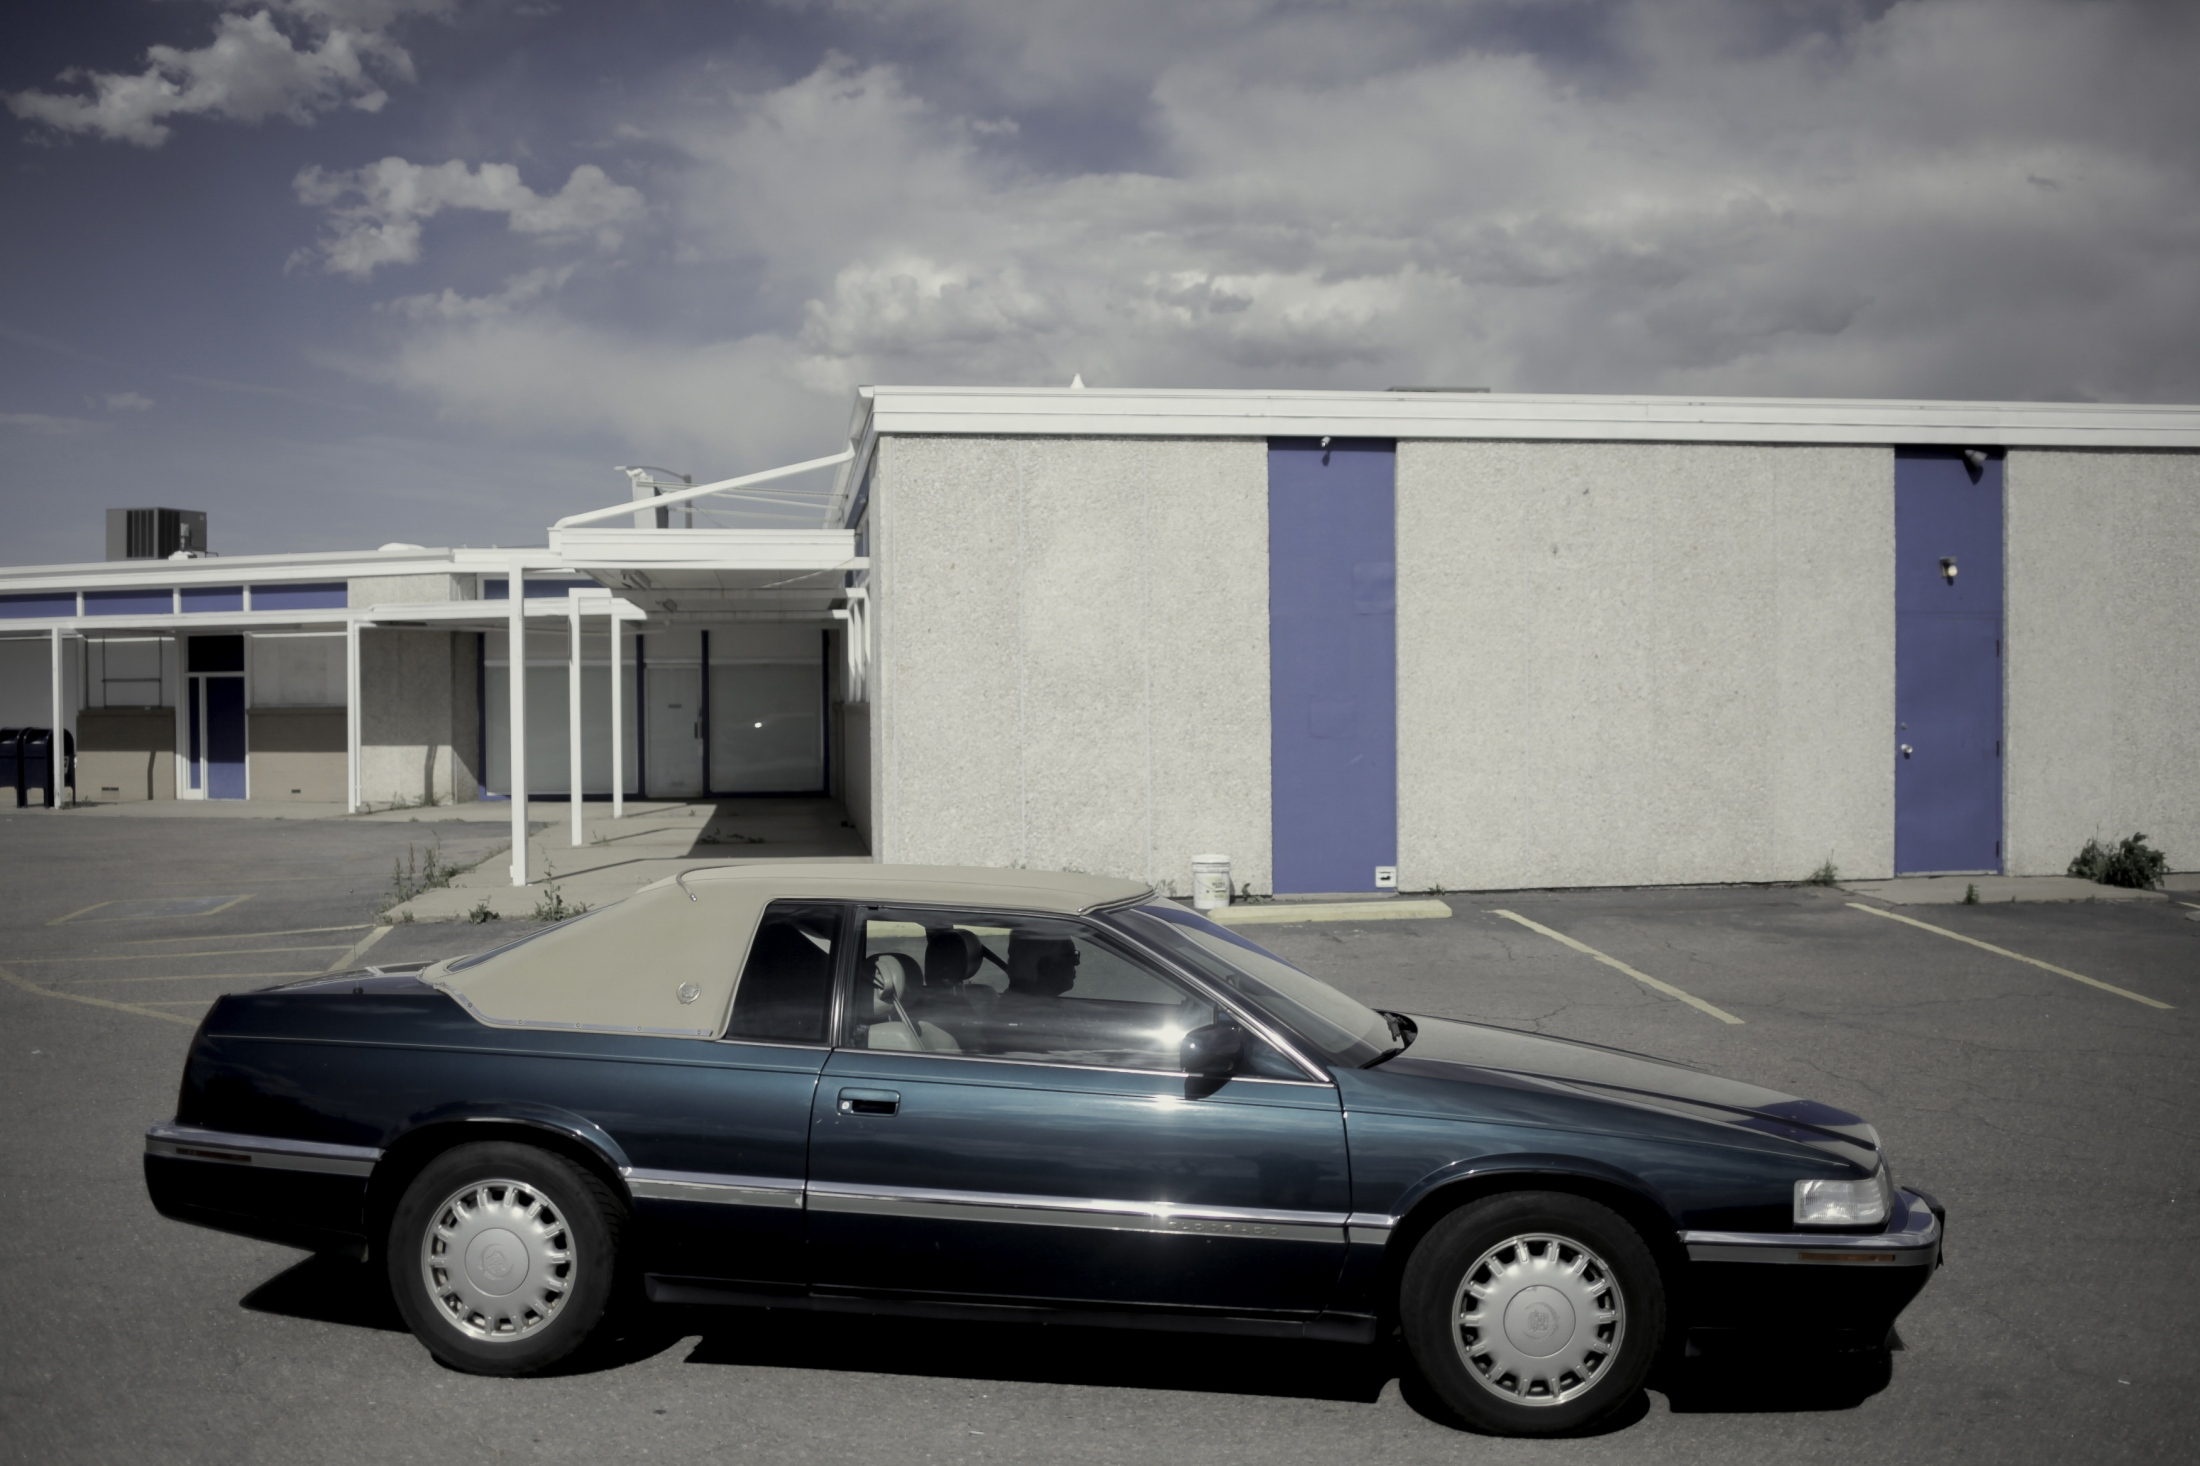 A parking lot in an abandoned strip mall. Denver, CO. 2018.